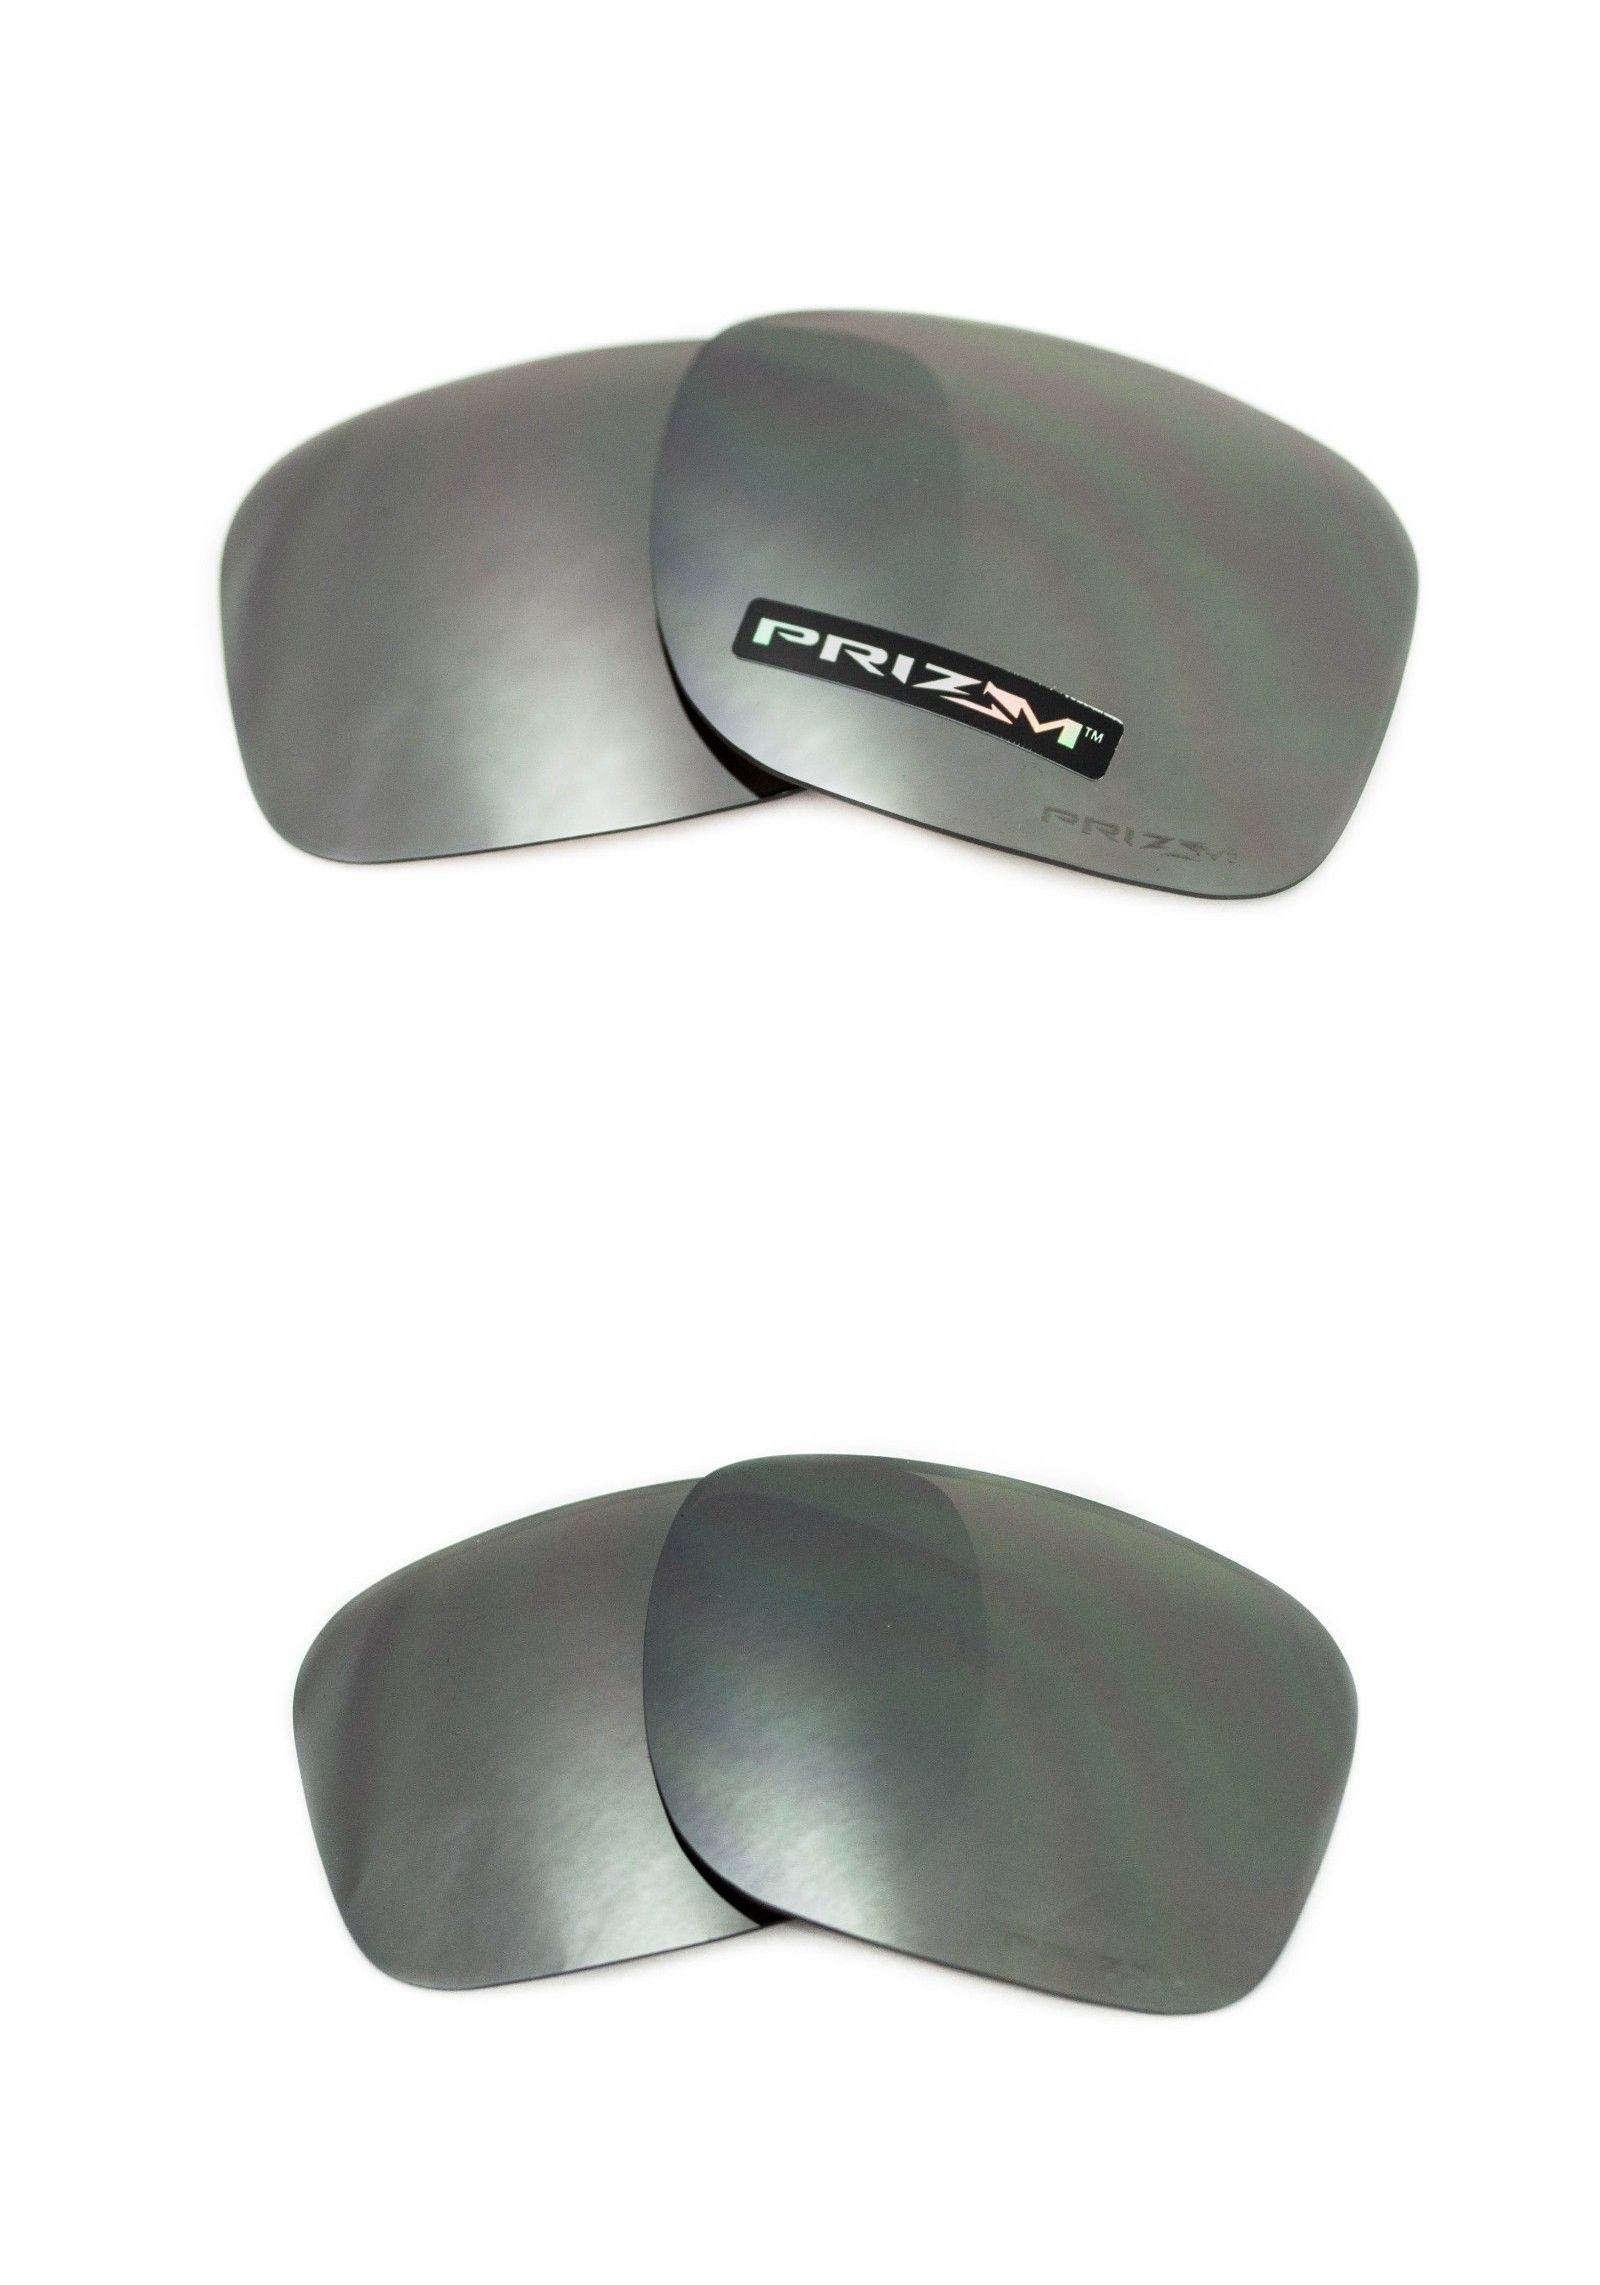 3dde03fd09 Sunglass Lens Replacements 179195  Oakley Holbrook Prizm Black Iridium  Replacement Lenses  Authentic  Rare -  BUY IT NOW ONLY   54.99 on eBay!